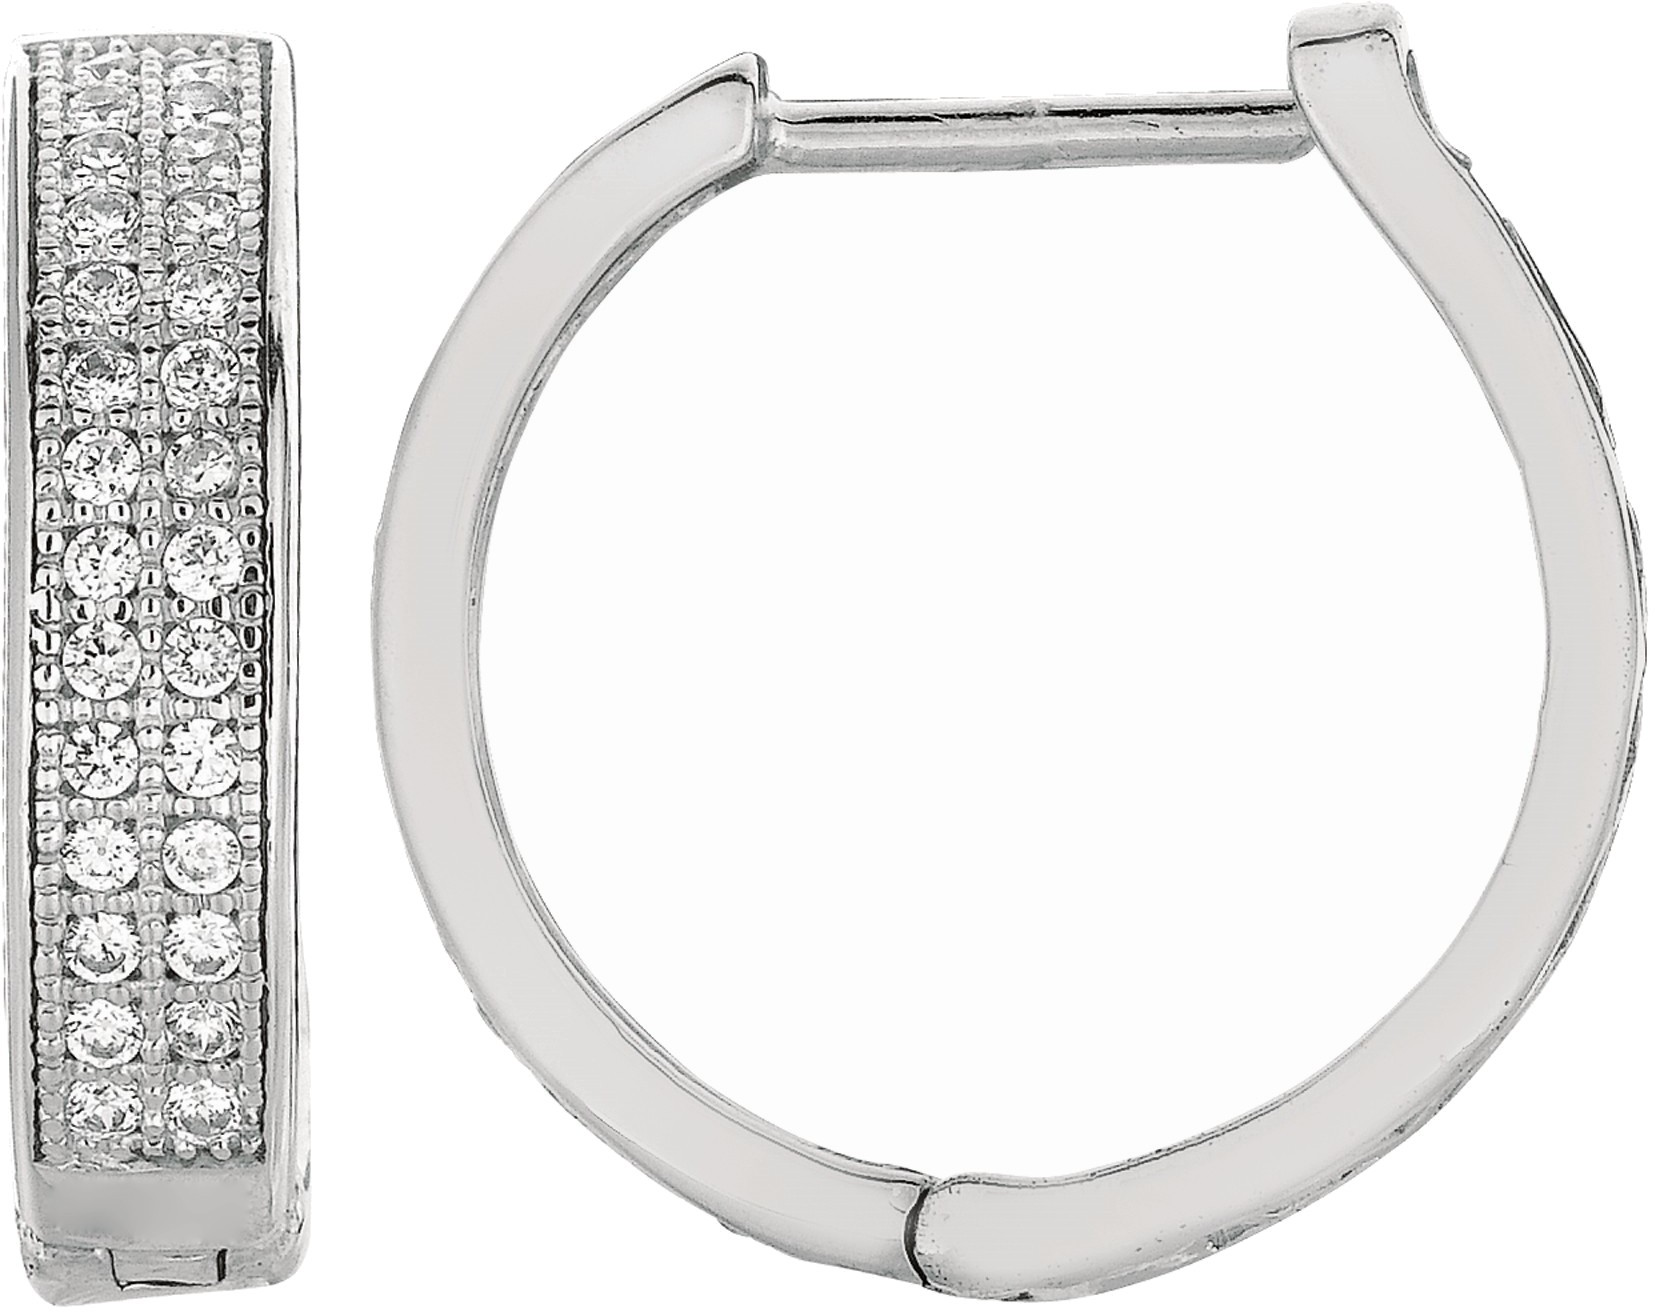 "Silver Rhodium Plated Shiny 4.0x17mm (0.16""x0.67"") Clear Cubic Zirconia (CZ) Huggie Hoop Earrings"